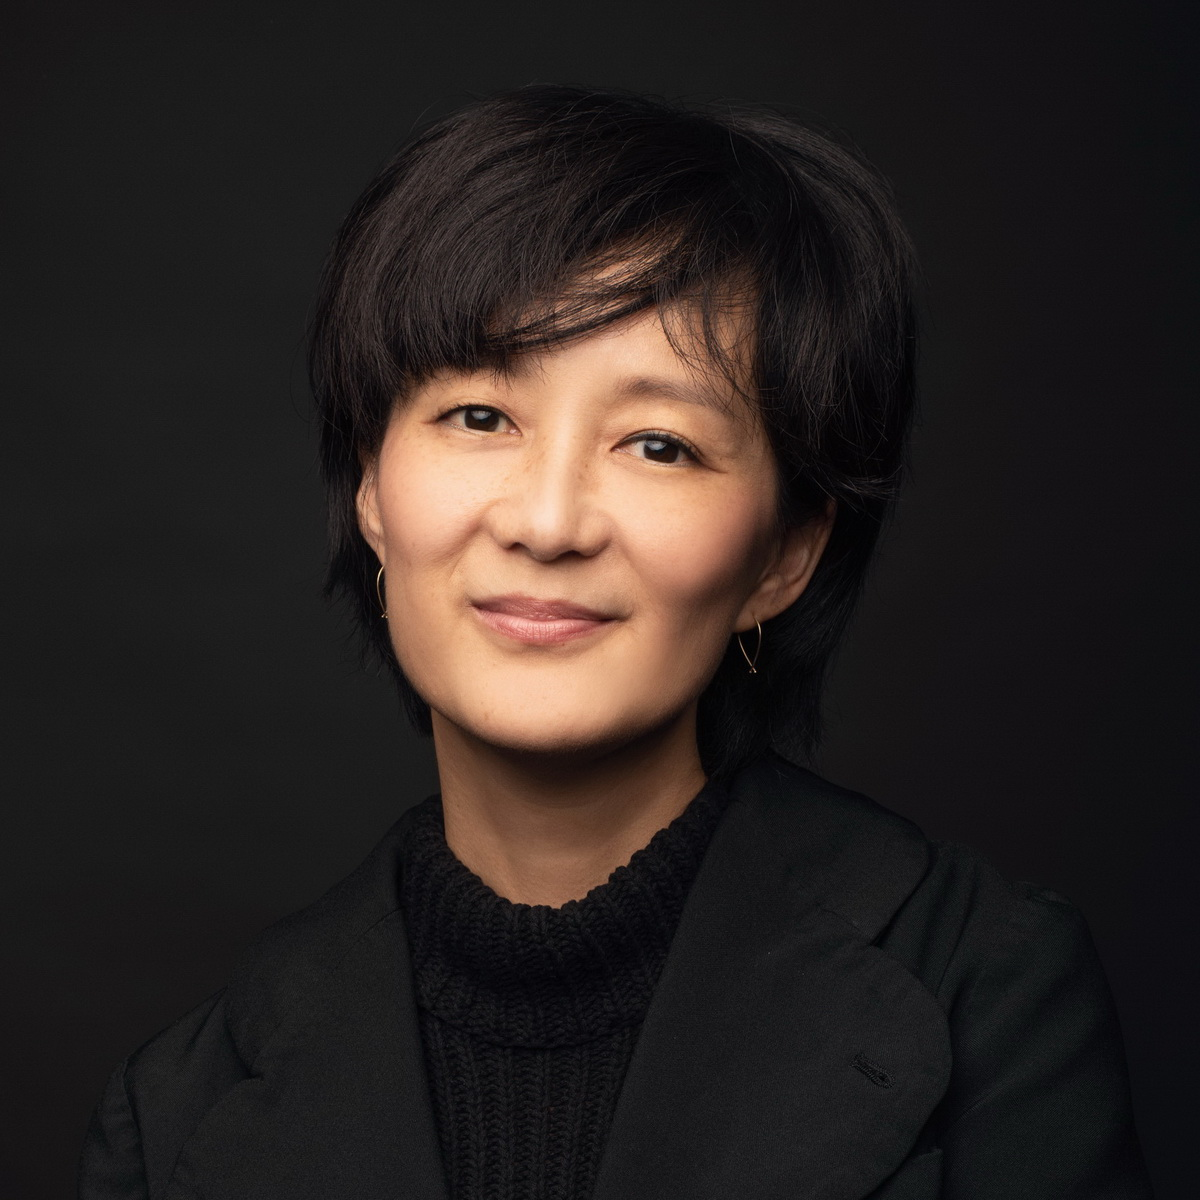 PATRICIA RHEE - Principal, Marketing Director | Ehrlich Yanai Rhee Chaney Architects